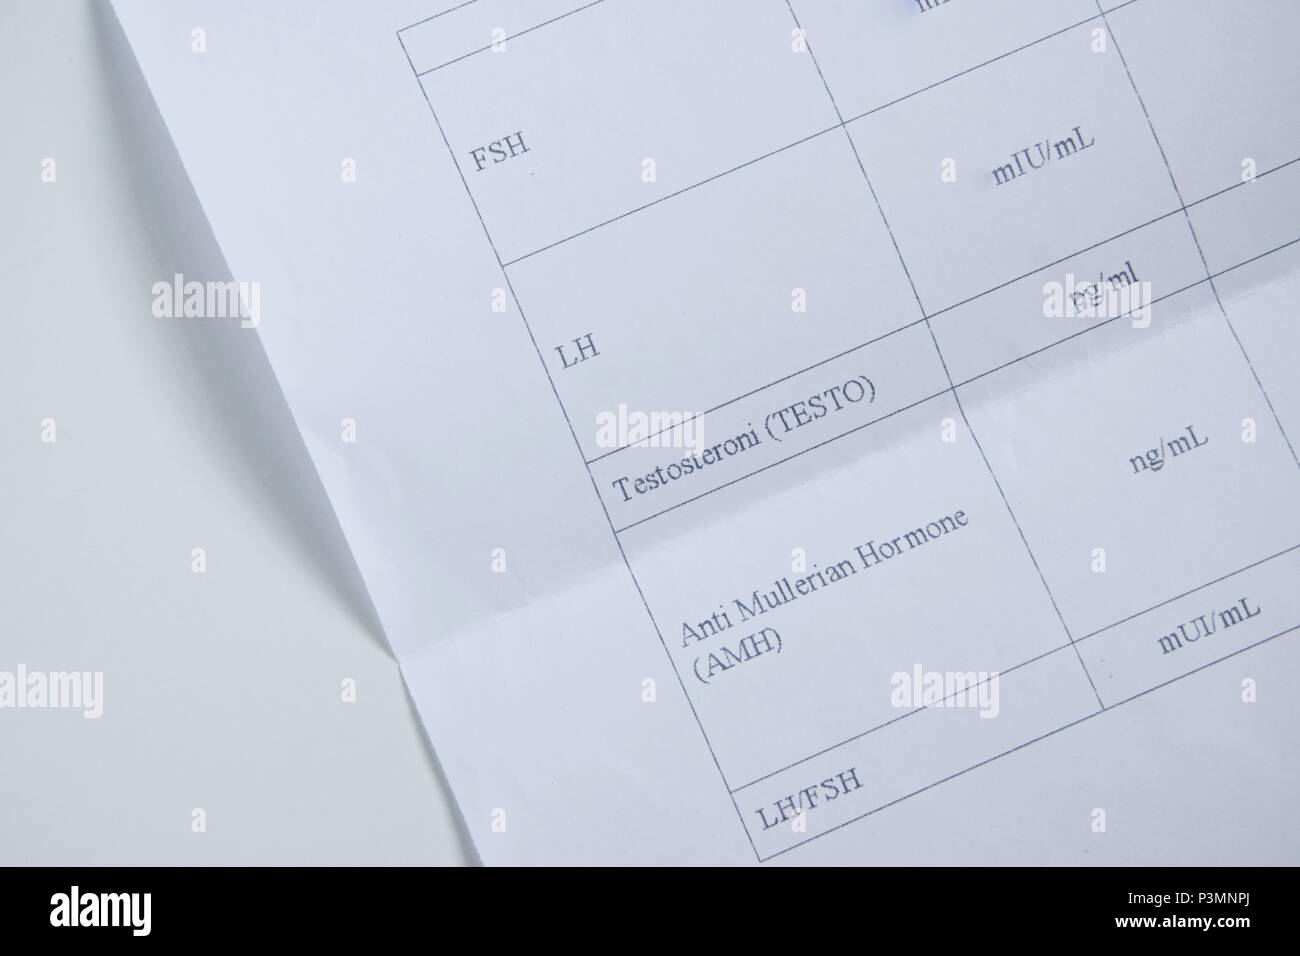 Top view of blood tests list for female hormones / fertility. Healthy medical concept - Stock Image